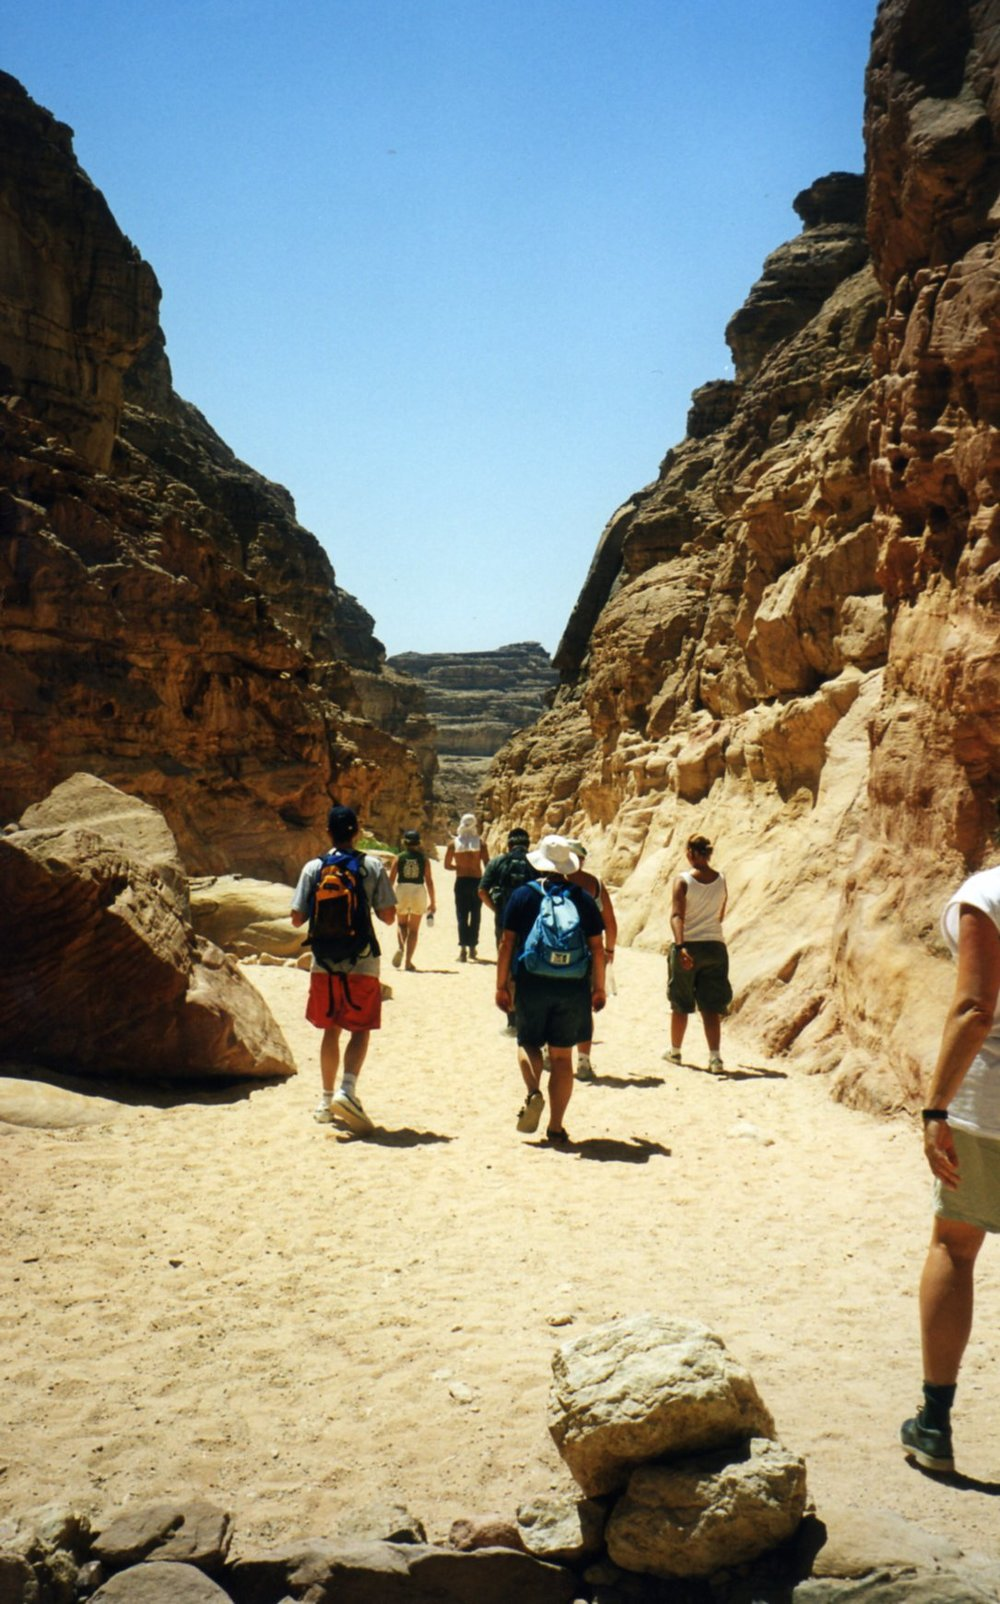 Hiking on the hot sands of the Coloured canyon